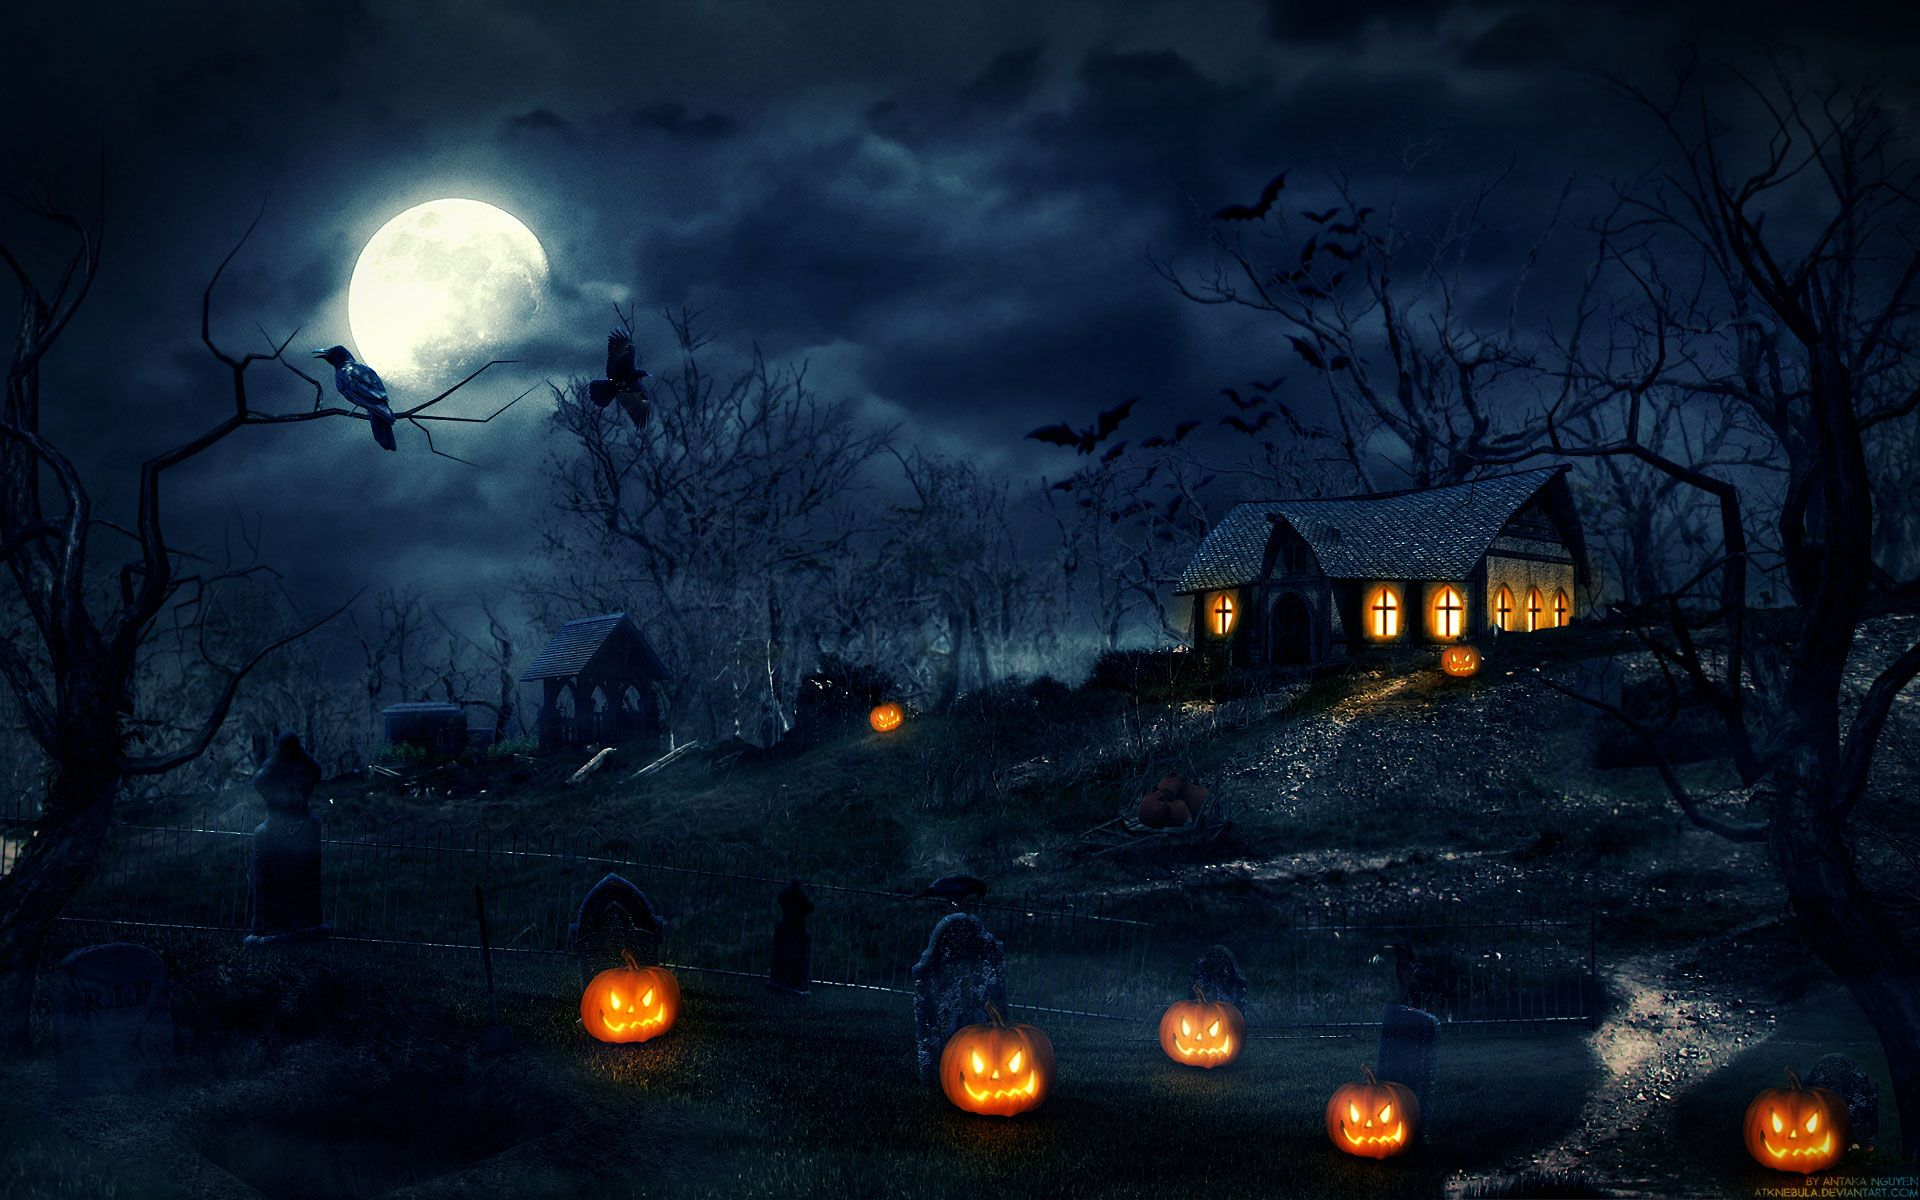 Free scary halloween backgrounds wallpaper collection 2014 12 incredible photoshop tutorials for beginners and advanced users all created in october baditri Choice Image